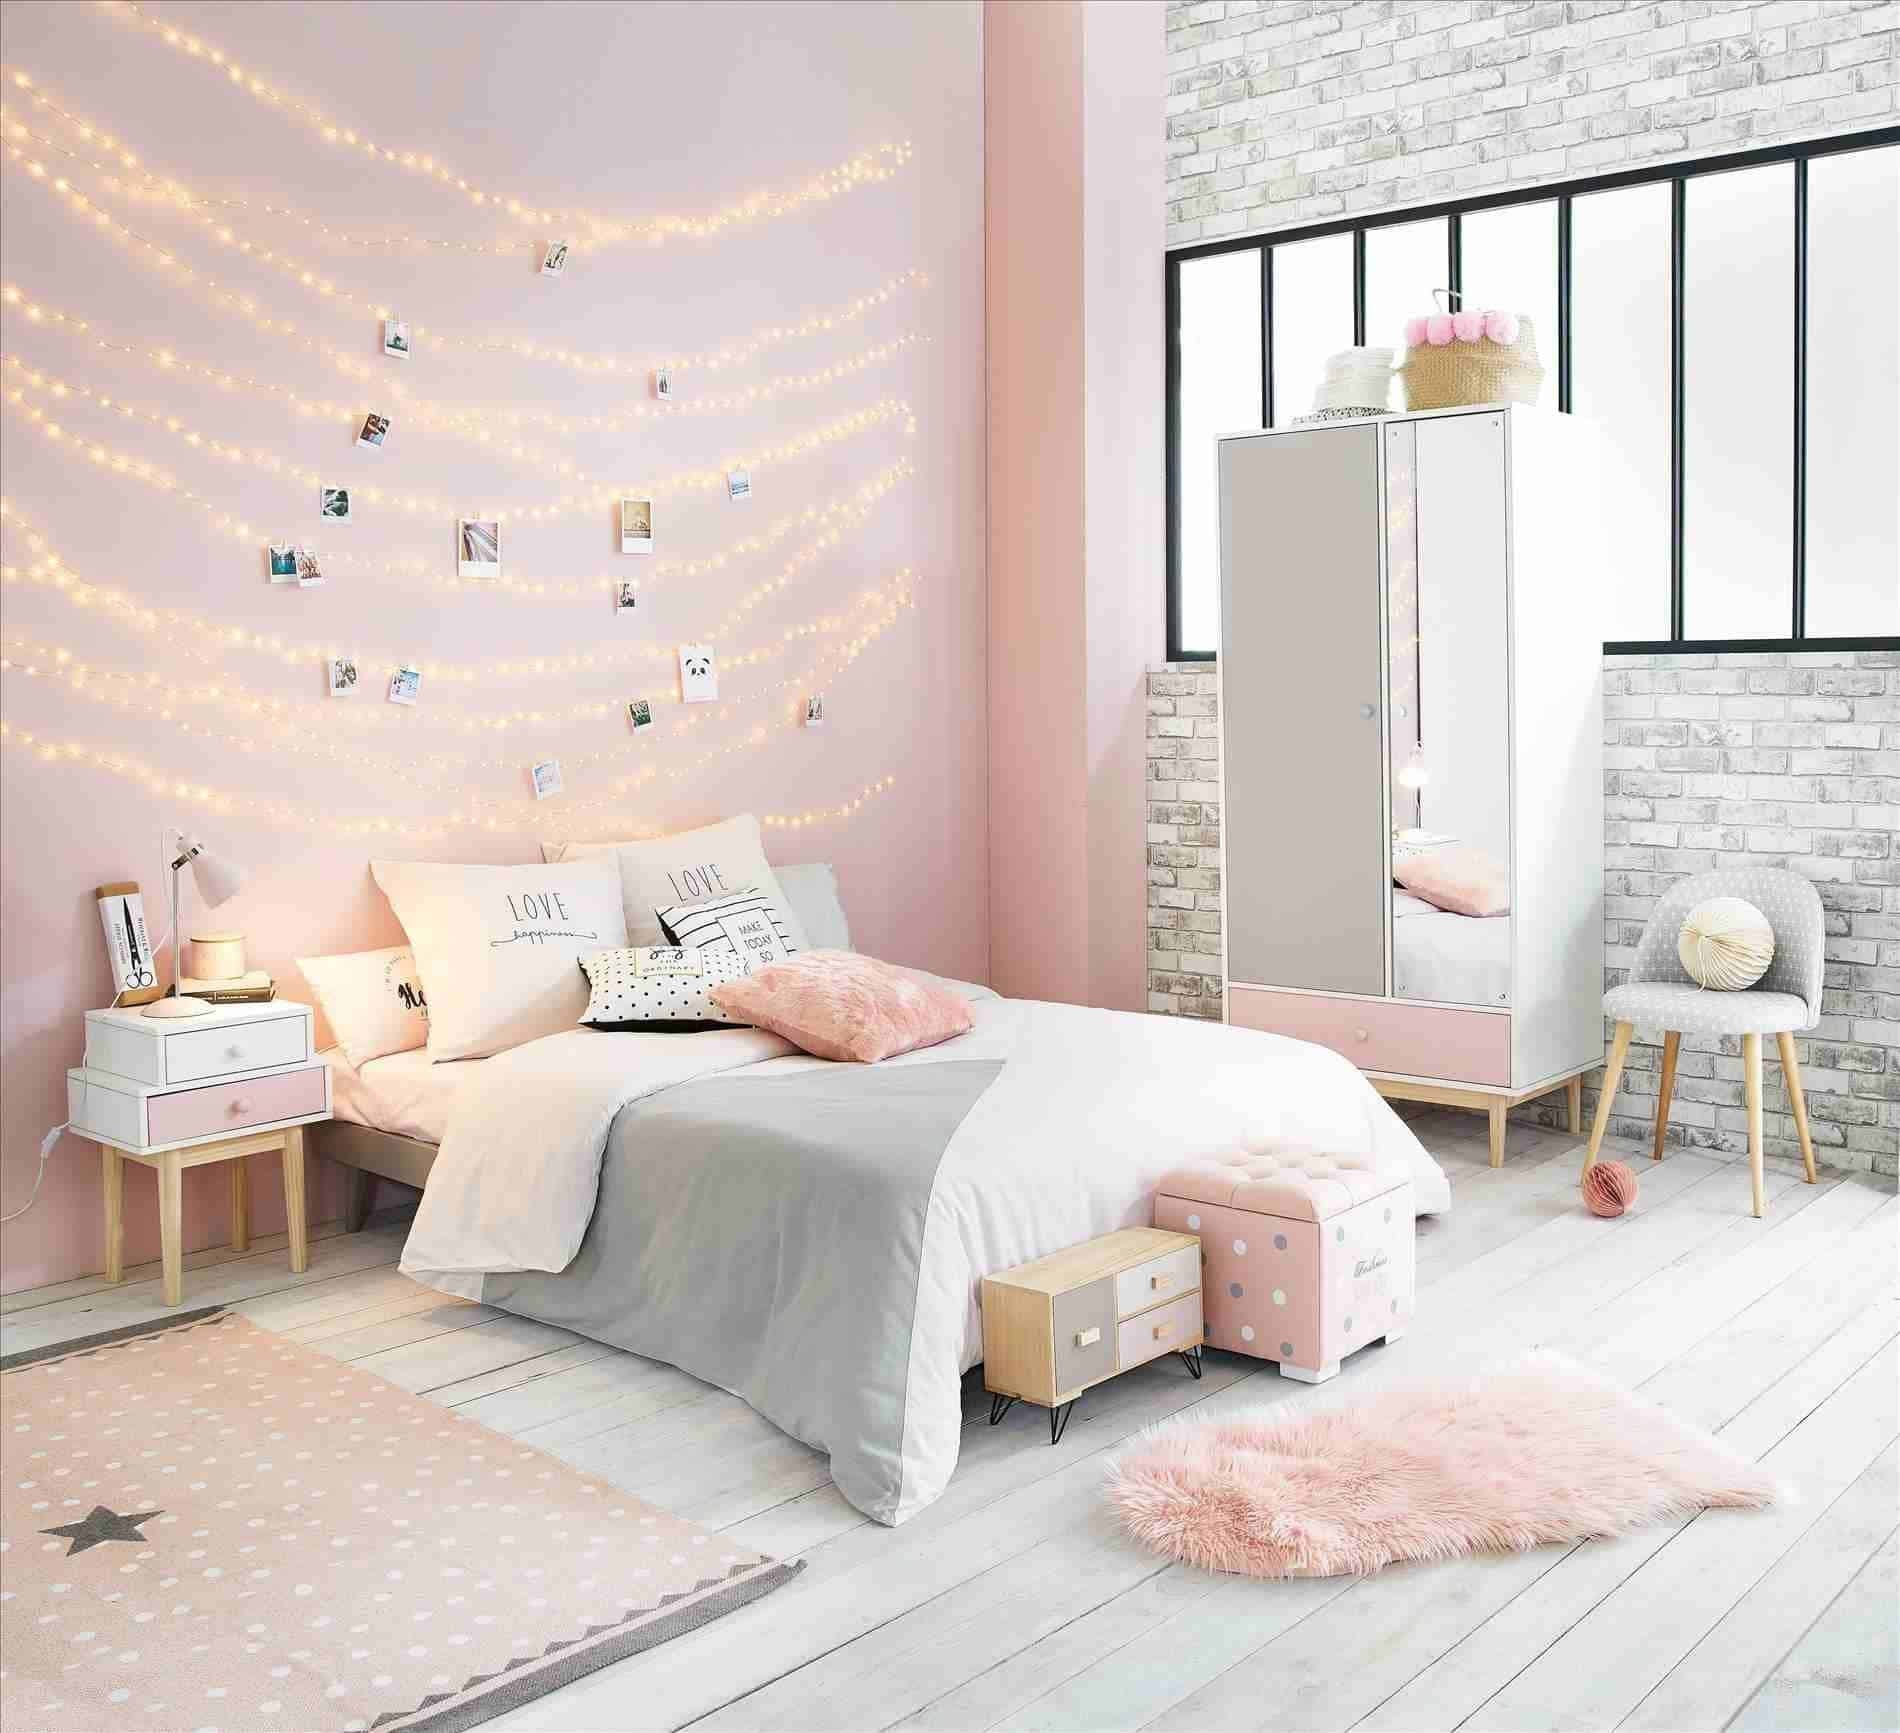 Crazy Cool Kids Bedroom Ideas on Room Girl  id=69481